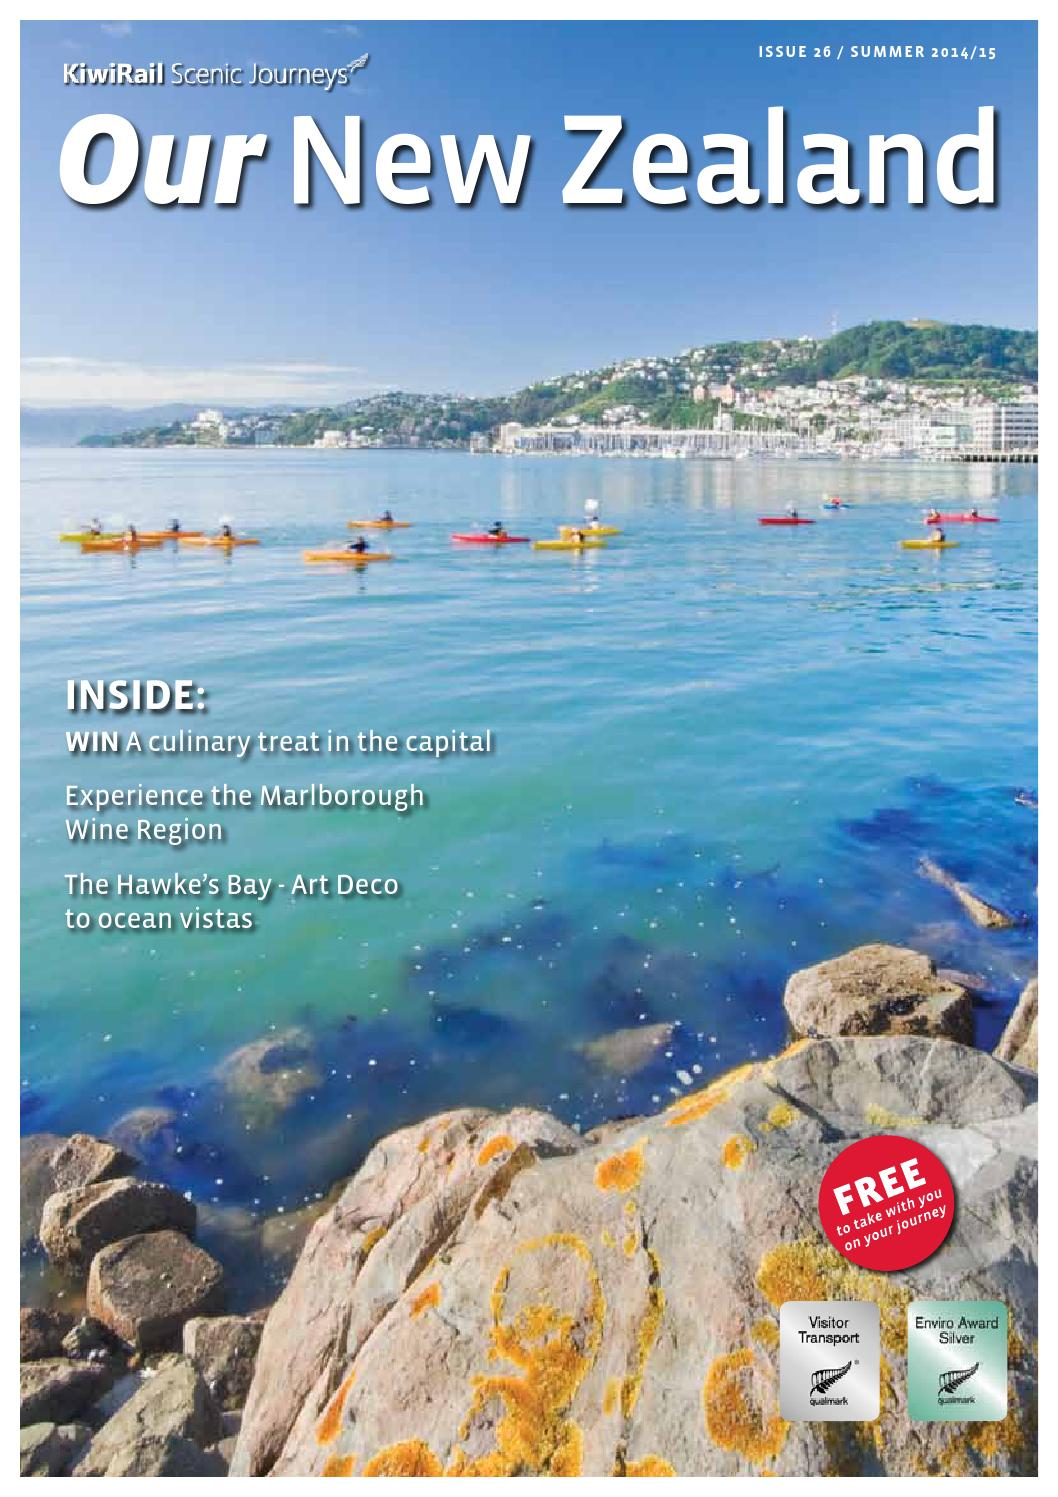 Kiwirail Scenic Journeys Our New Zealand Issue 26 Summer 2014 15 By Inflightpublishing Issuu